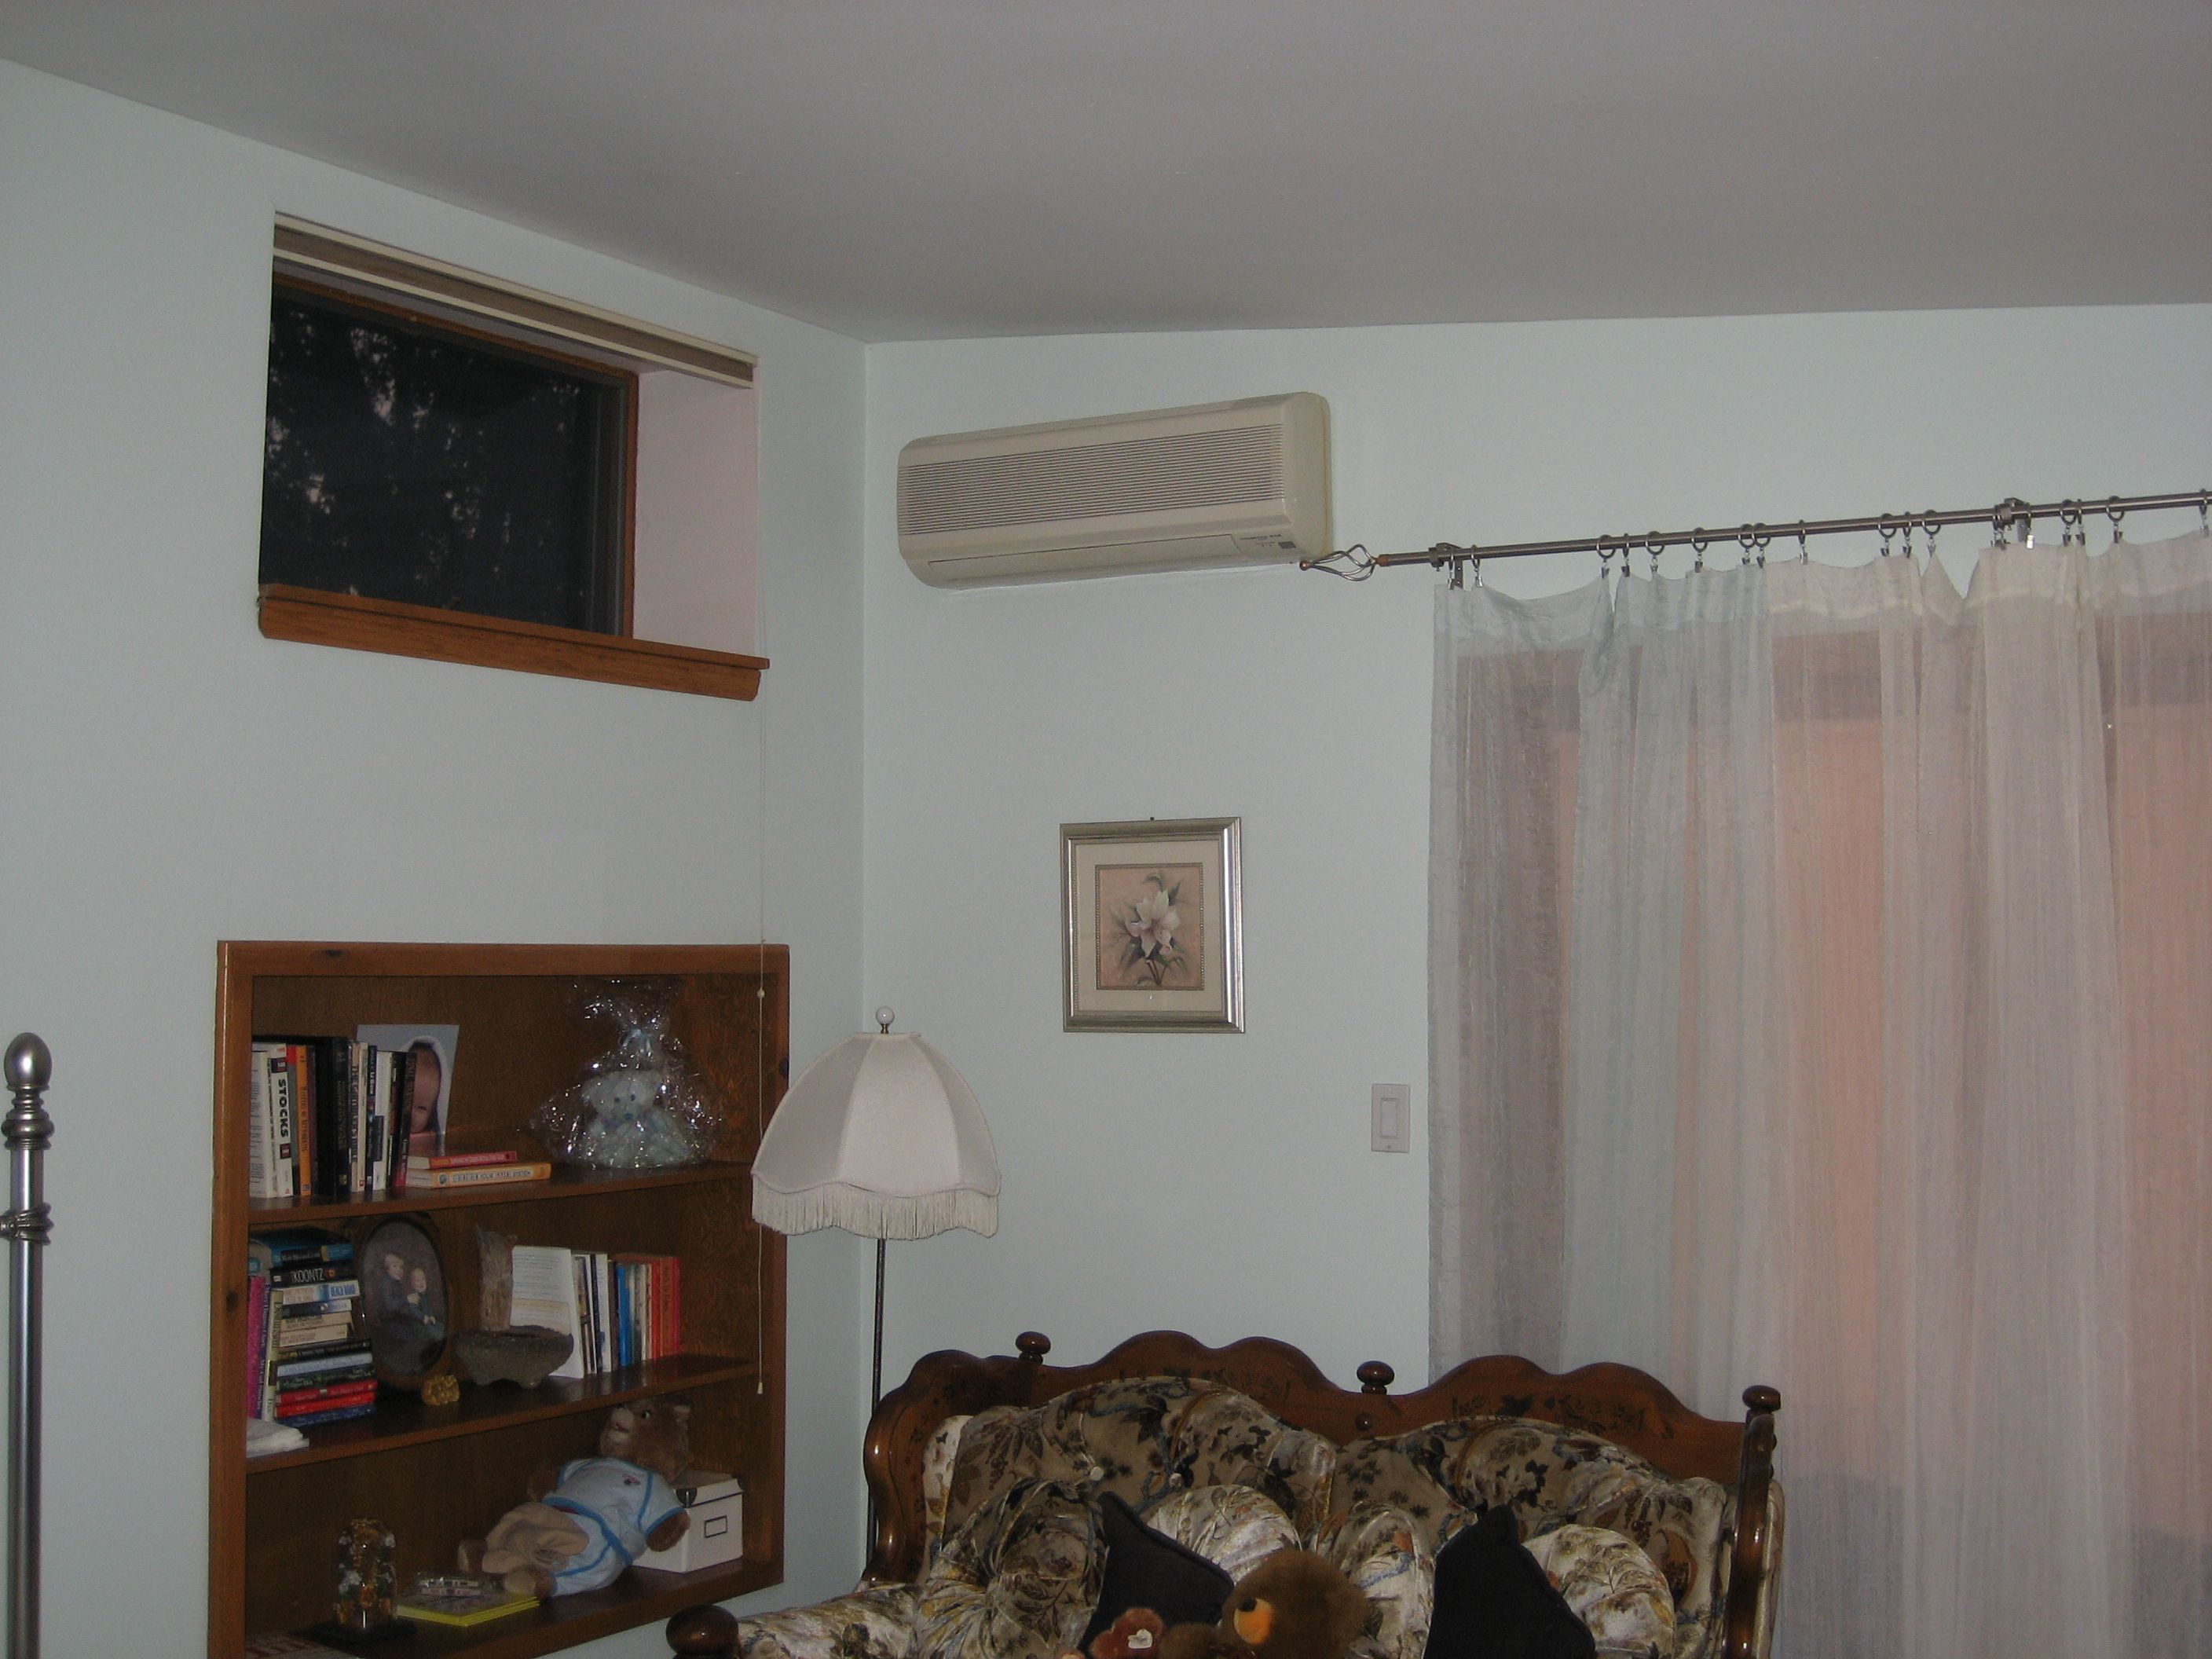 Mitsubishi wall mount in bedroom Ductless heating, Ductless